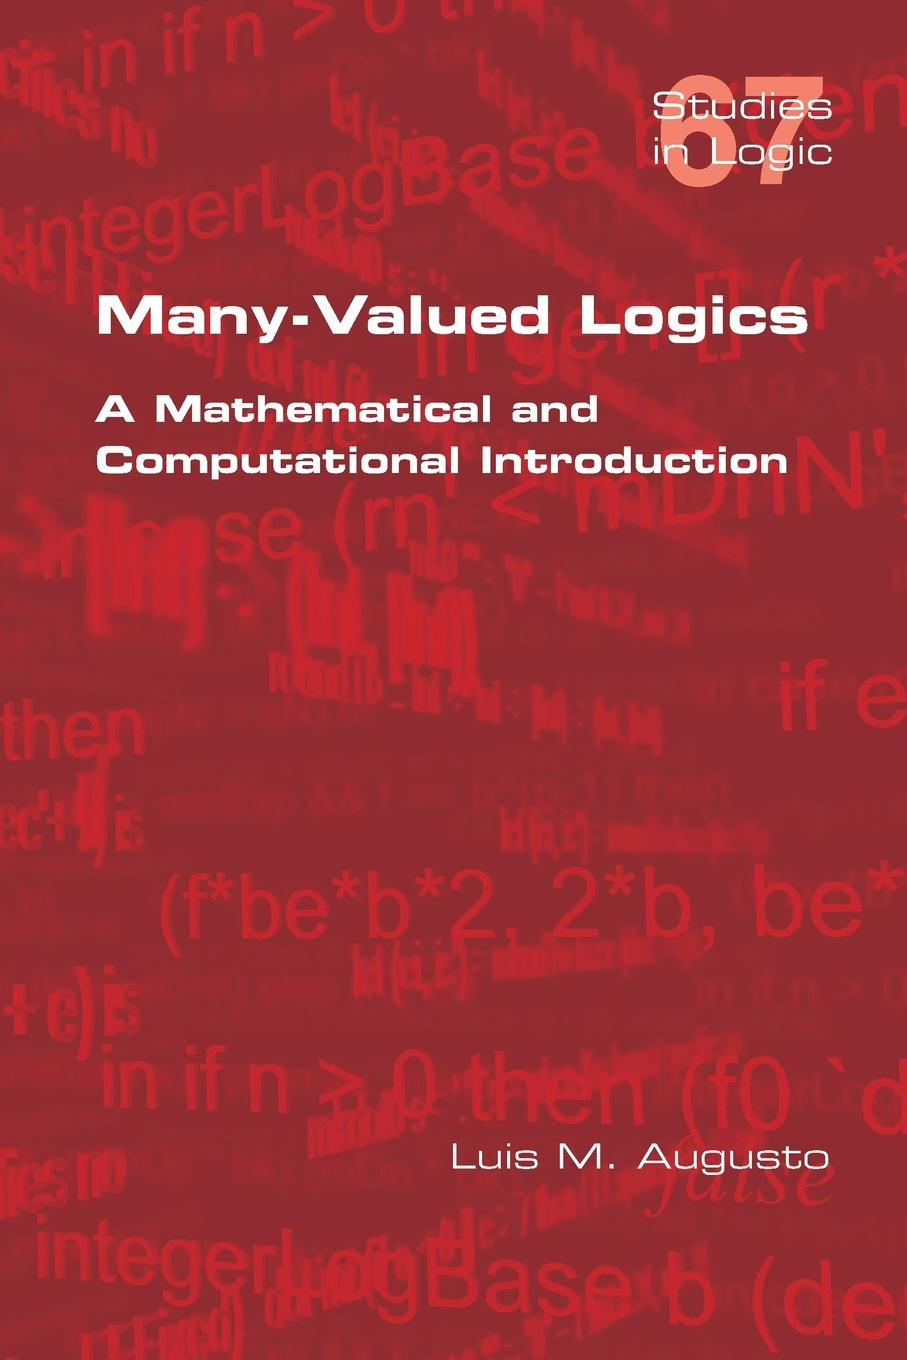 Luis M Augusto Many-Valued Logics. A Mathematical and Computational Introduction guy champniss brand valued how socially valued brands hold the key to a sustainable future and business success